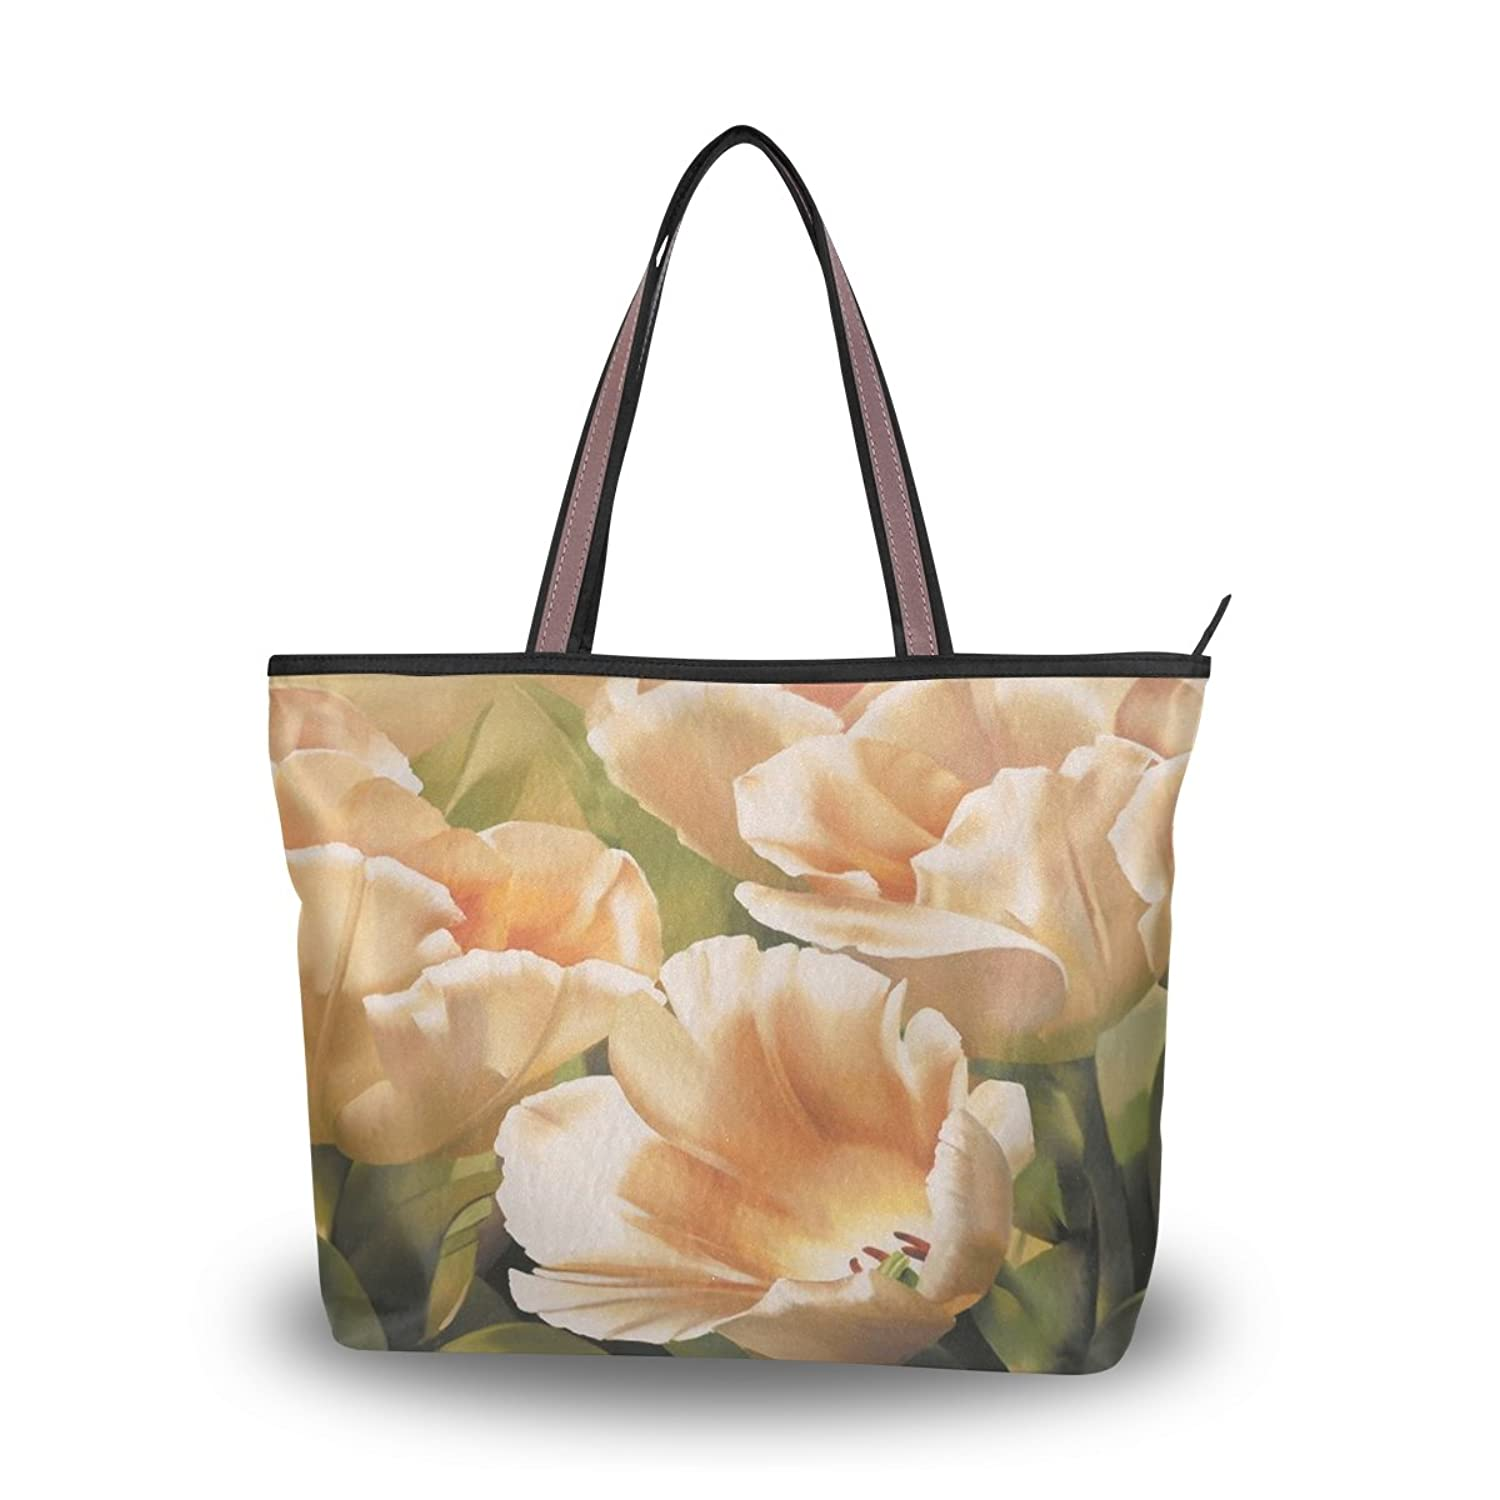 Yochoice Women's Shoulder Bags,Retro Vintage Art Floral Oil Painting,Tote Bag Design 44